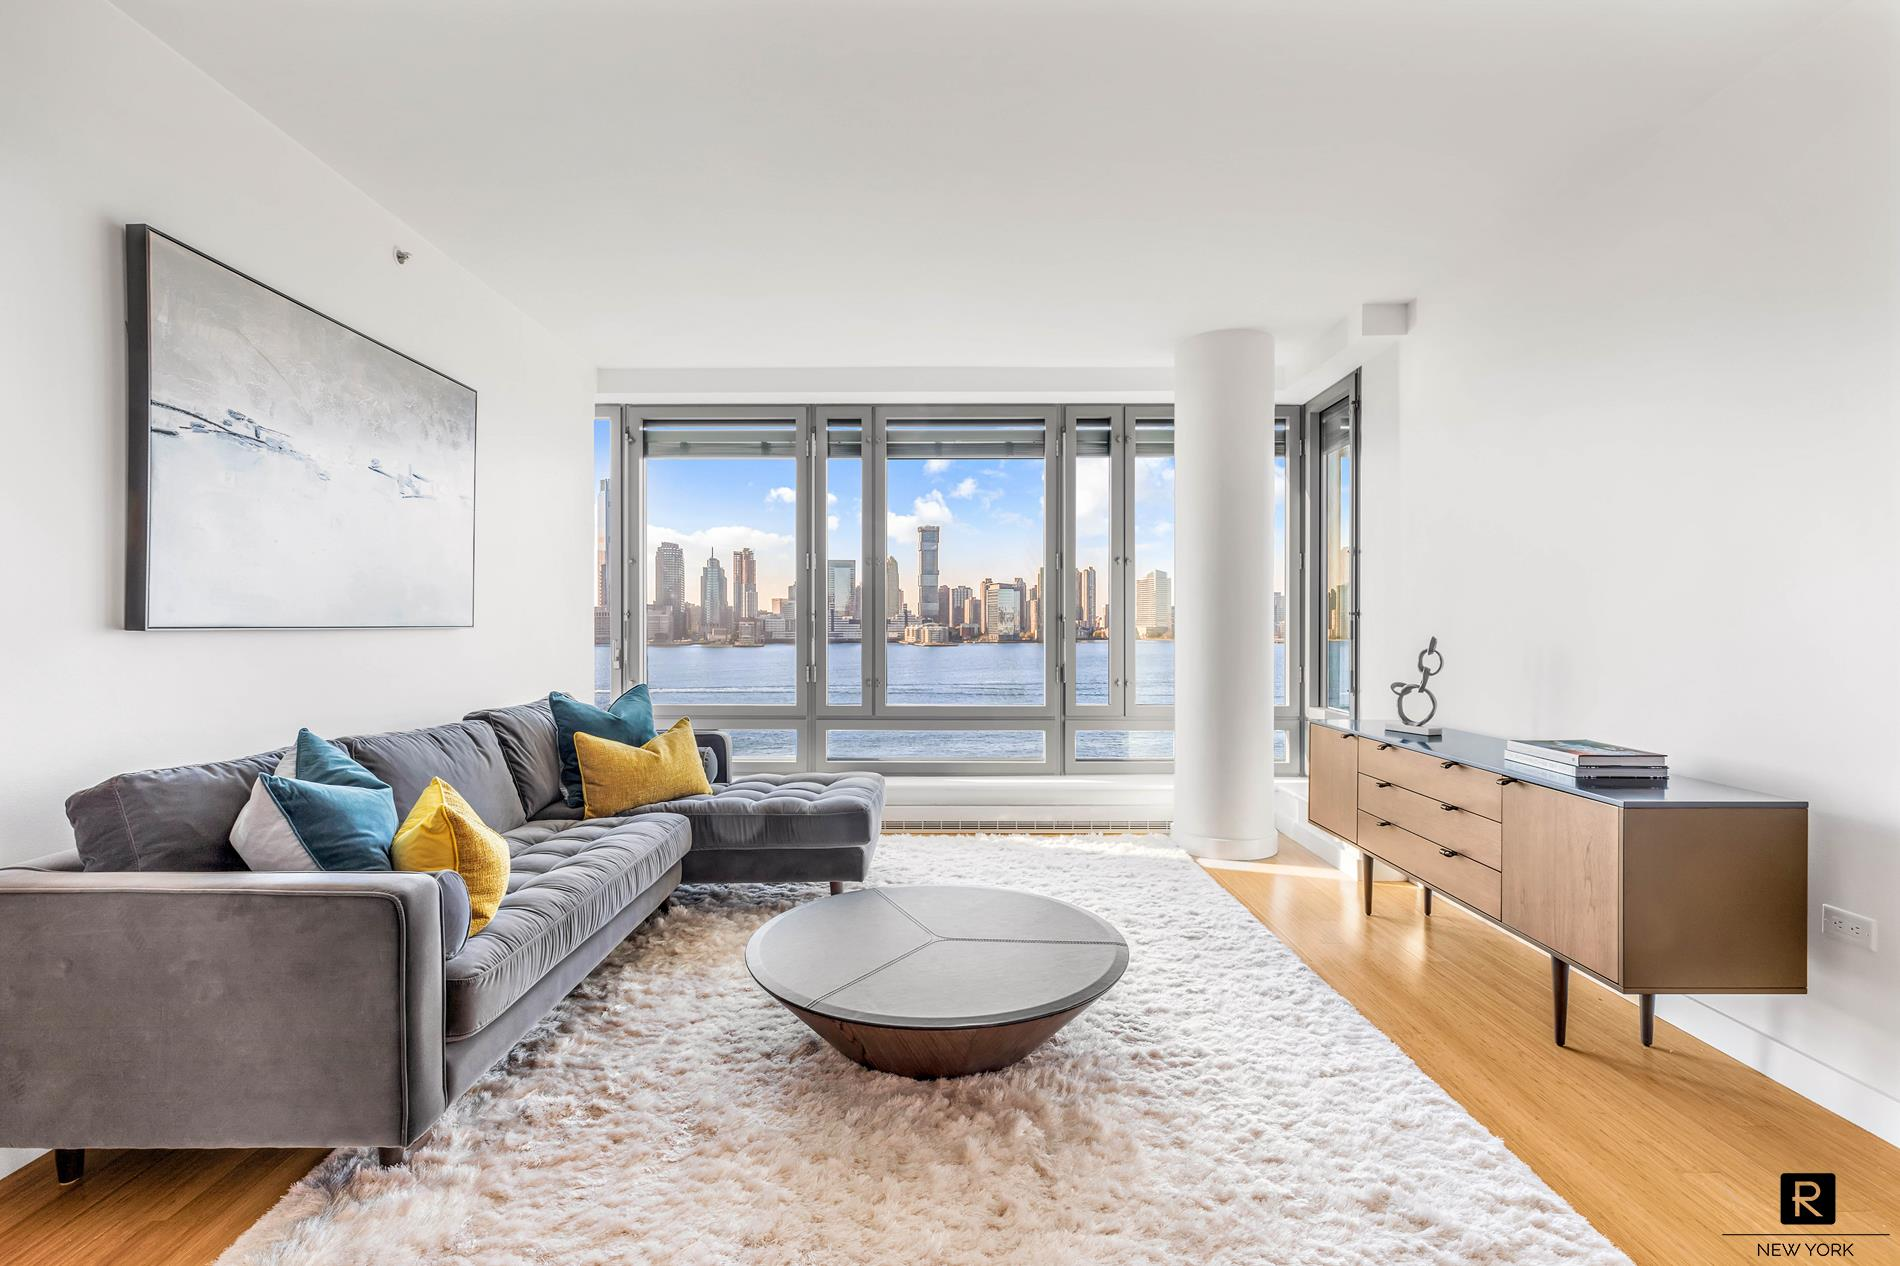 """WATERFRONT LIVING AT IT'S BEST! -- 3 bed/3.5 bath plus home office with direct Hudson River views in the Riverhouse, the only LEED Certified Green condominium in North Battery Park / West Tribeca.  This highly sought after, rarely available """"J"""" line encompasses almost 1,900sqft and has a loft-like feel with it's tall ceilings, wall to wall windows, large open living/dining area and spacious kitchen. Relax and marvel at the breathtaking views from your living room of the Hudson River, Statue of Liberty and Rockefeller Park.  Chefs will love this 14' wide kitchen featuring custom Italian teak-faced cabinetry by Schiffini, Corian countertops, large island, wine refrigerator and energy star appliances by Sub-Zero, Thermadore and Miele. All three bedrooms and office are split from each other allowing for maximum privacy. The master bedroom has complete privacy with it's West facing windows looking out of the parks and water, two large closets and an en-suite bathroom with double sink vanity, frameless glass shower, separate Neptune soaking tub and honed-finished travertine marble. There are two additional well-proportioned bedrooms each with en-suite bathrooms and a separate heated/cooled home office area with custom fitted cabinetry.  A powder room, fitted closets, multi-zone thermostat controls, filtered air and water and a Bosch washer and dryer complete this home. *** THERE HAS NOT BEEN A """"J"""" LINE THAT HAS COME AVAILABLE FOR SALE IN ALMOST 10 YEARS.  SOUGHT AFTER FOR IT'S EFFICIENT LAYOUT AND VIEWS ***The Riverhouse is situated in front of Rockefeller Park greenery and the Hudson River. This full-service building is rated Gold by the Leadership in Energy and Environmental Design (LEED) program. This luxury condominium features 24-hour concierge service, on-site parking garage, 50' lap pool, fitness center, bicycle storage, billiards area, landscaped interior courtyard and outdoor terrace, media cafe, and private pet grooming area. The building is home to the Poets Ho"""